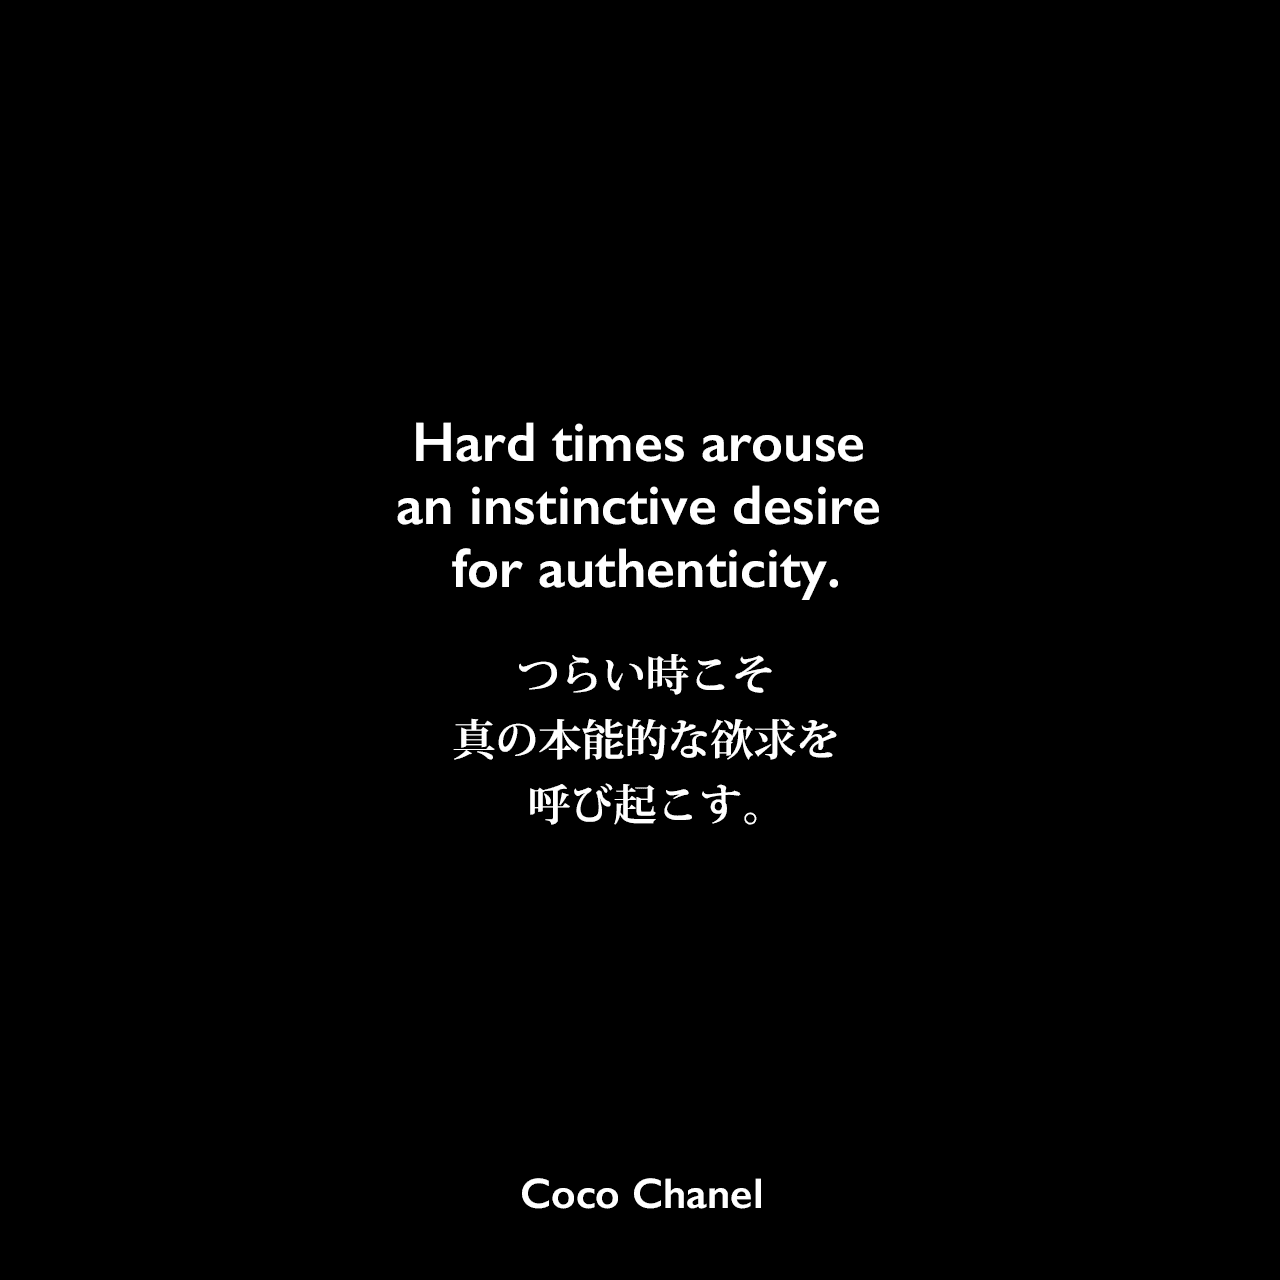 Hard times arouse an instinctive desire for authenticity.つらい時こそ、真の本能的な欲求を呼び起こす。Coco Chanel